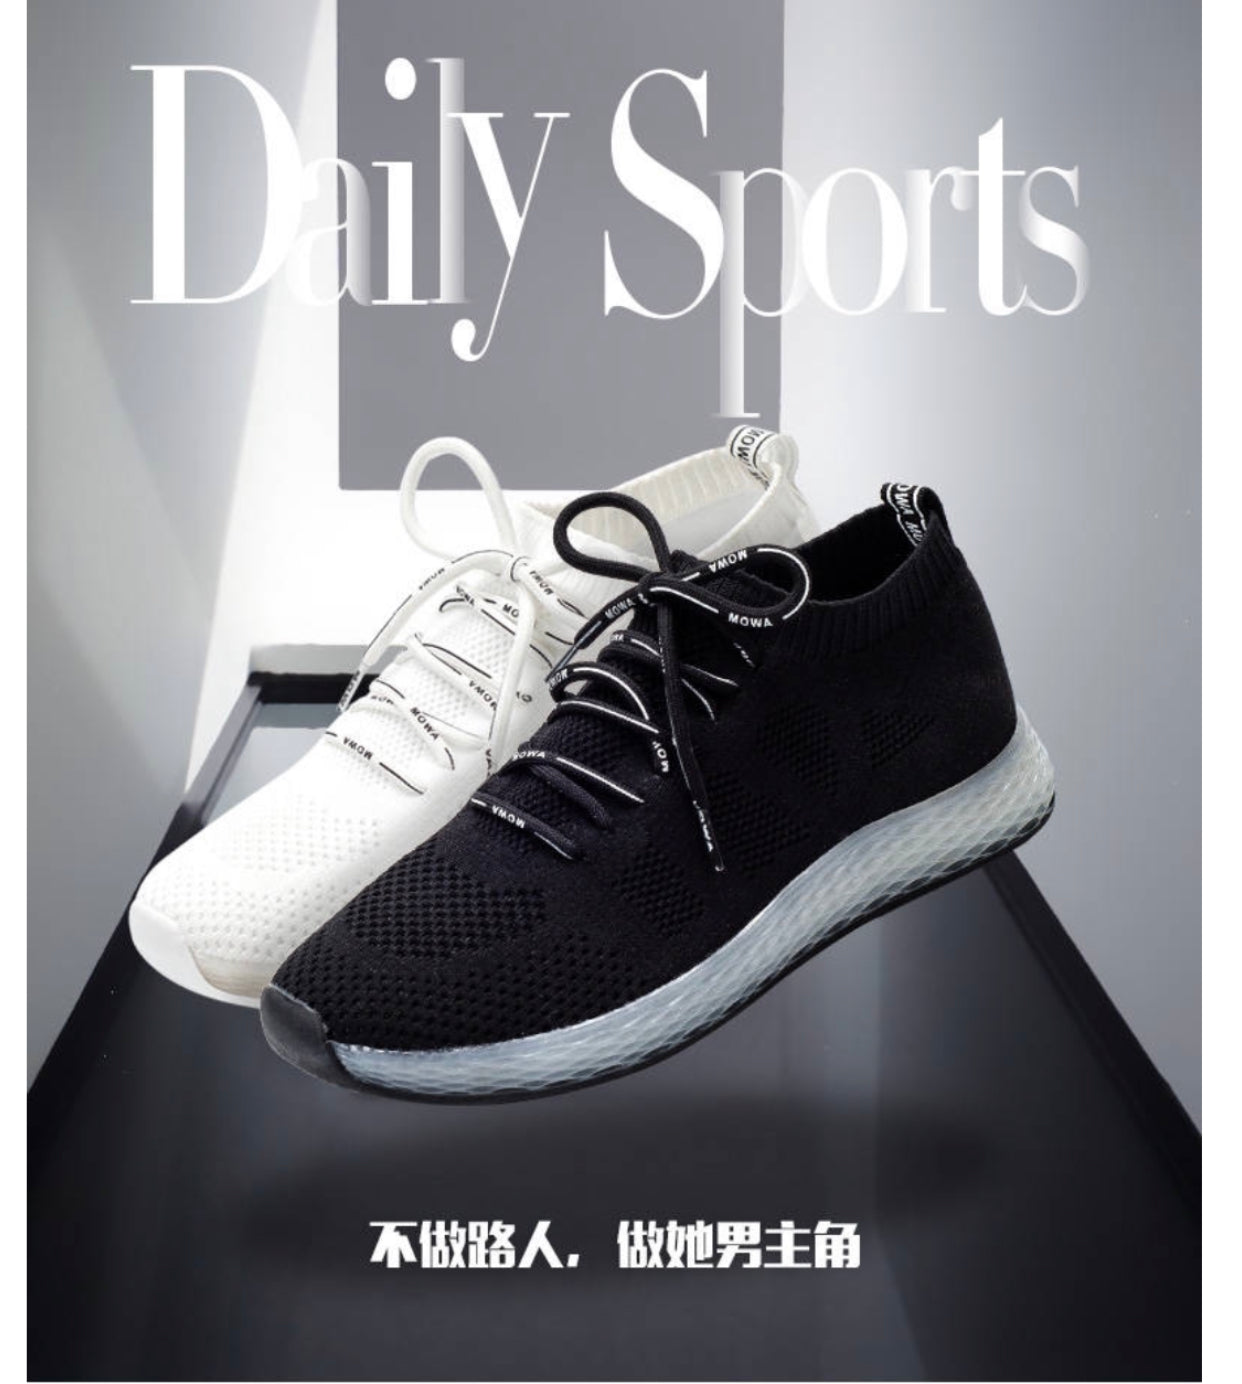 Mowa Daily Sports Shoes